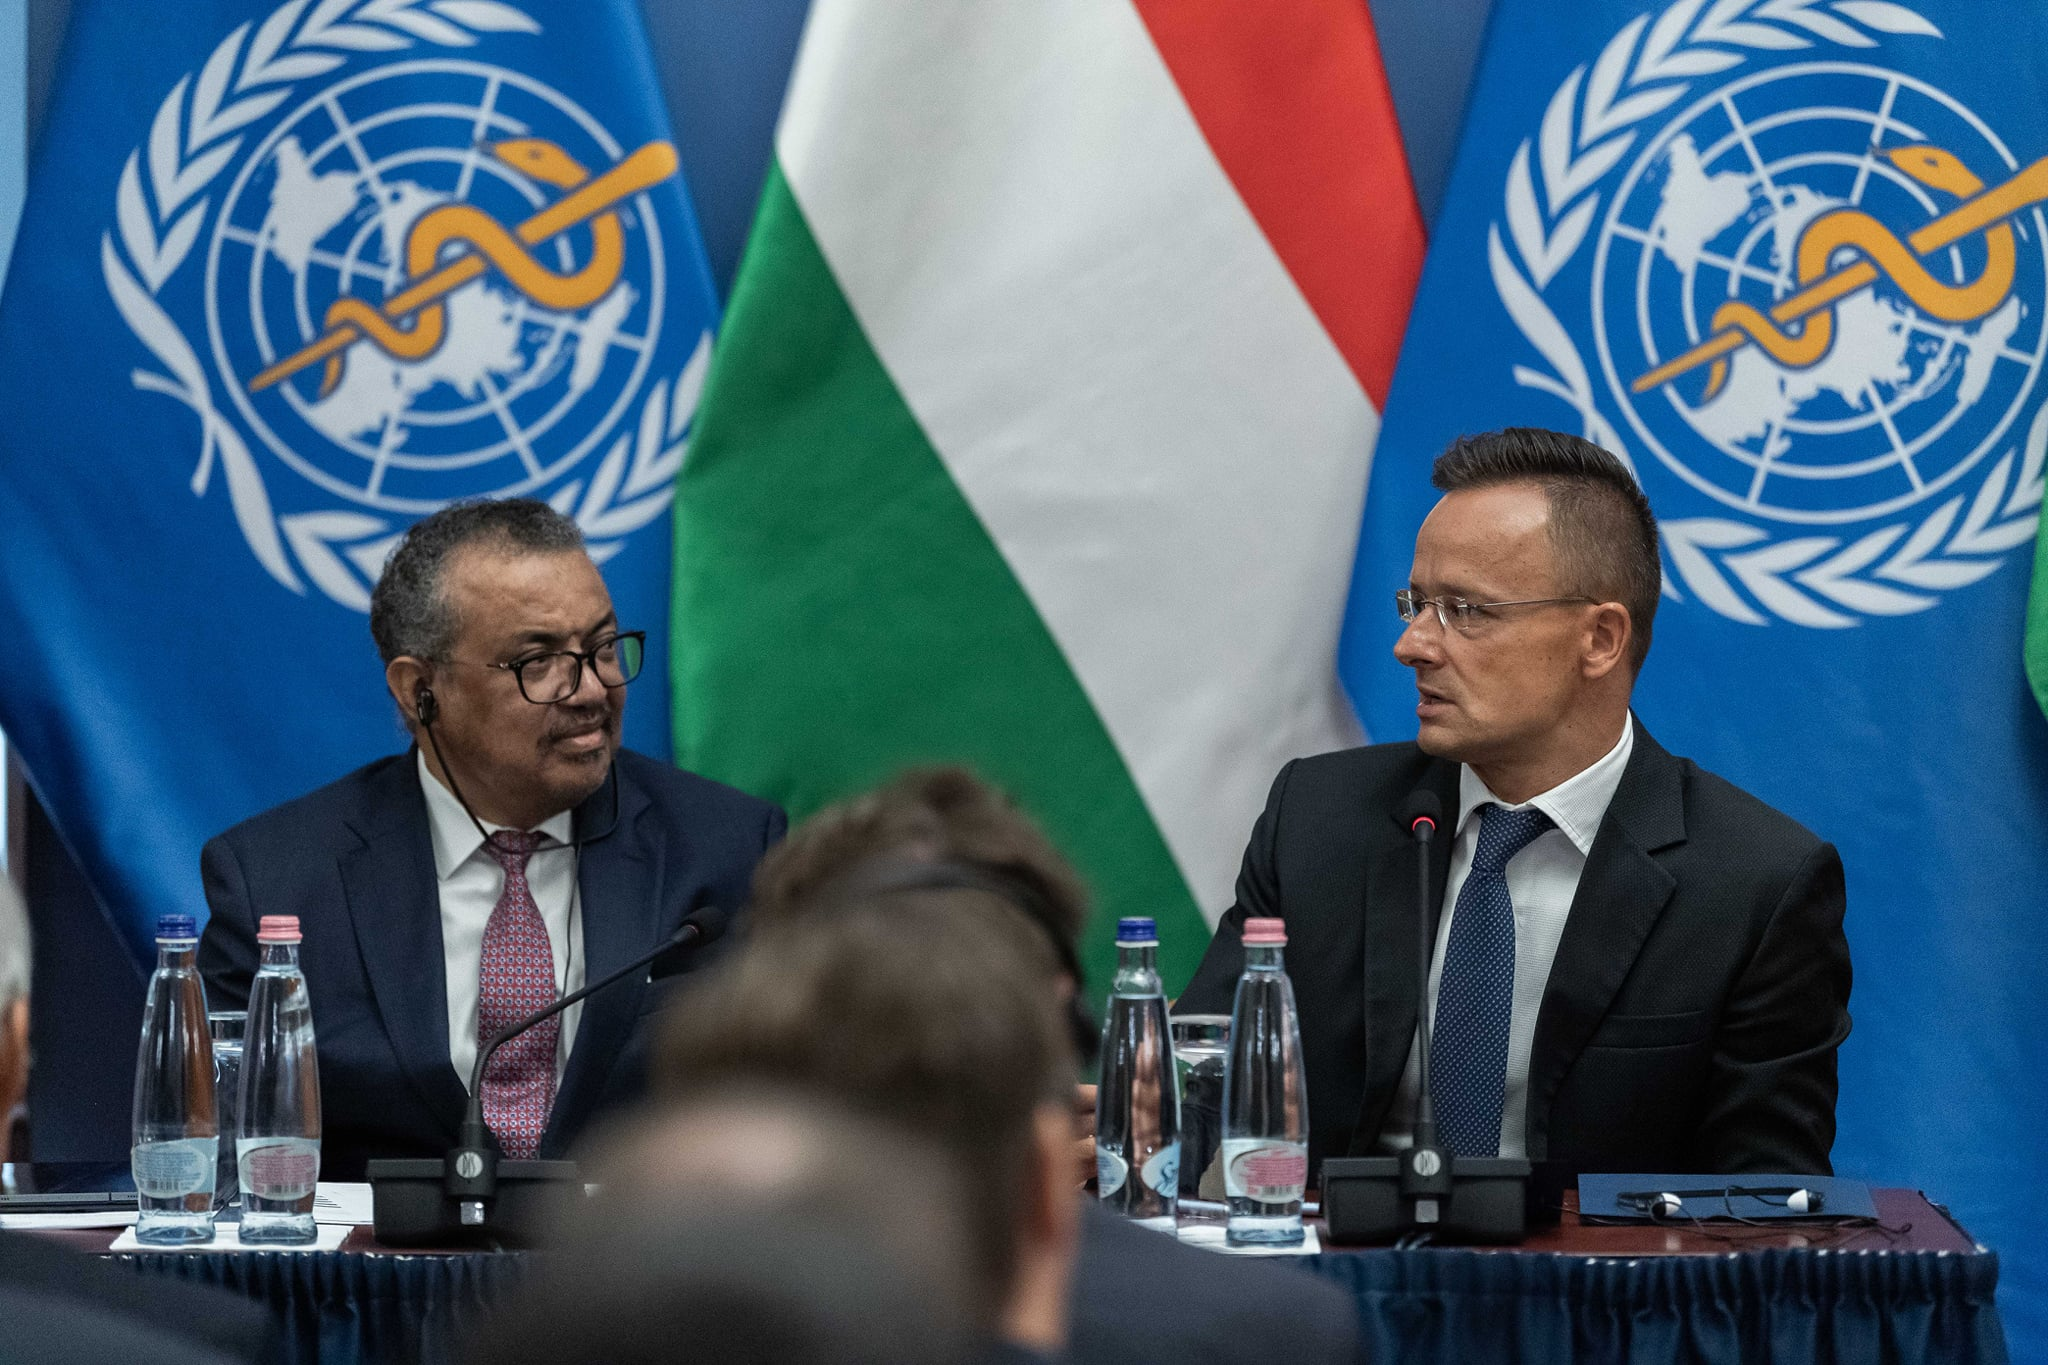 Hungary foreign minister WHO